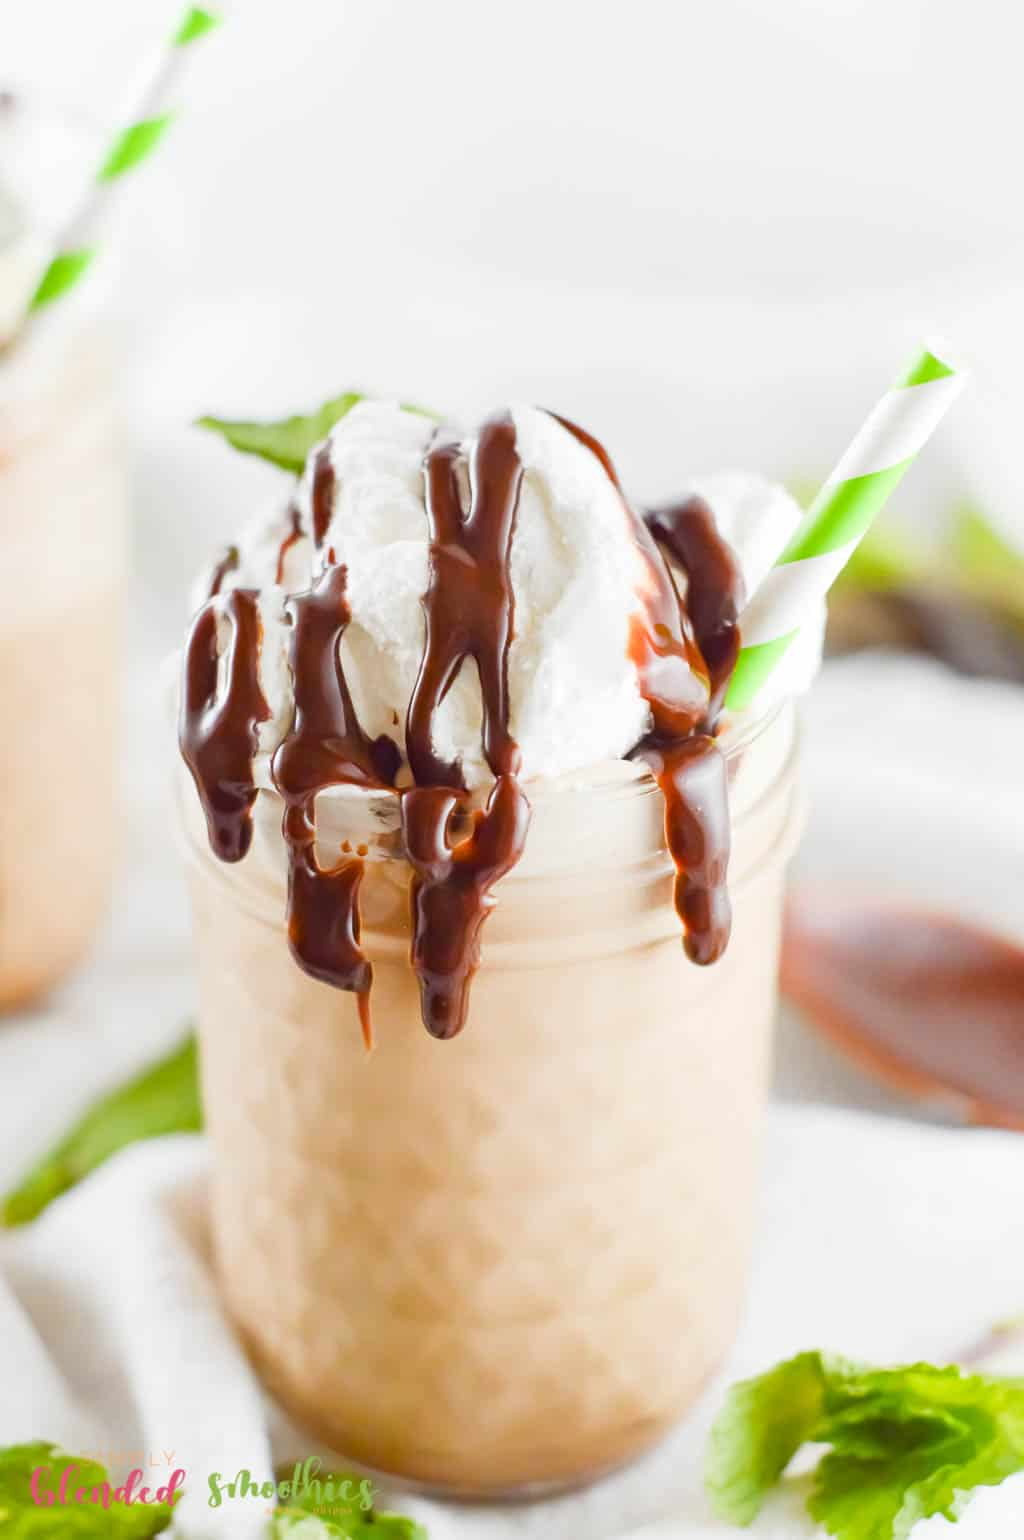 how to make a Mocha Frappe in your own home